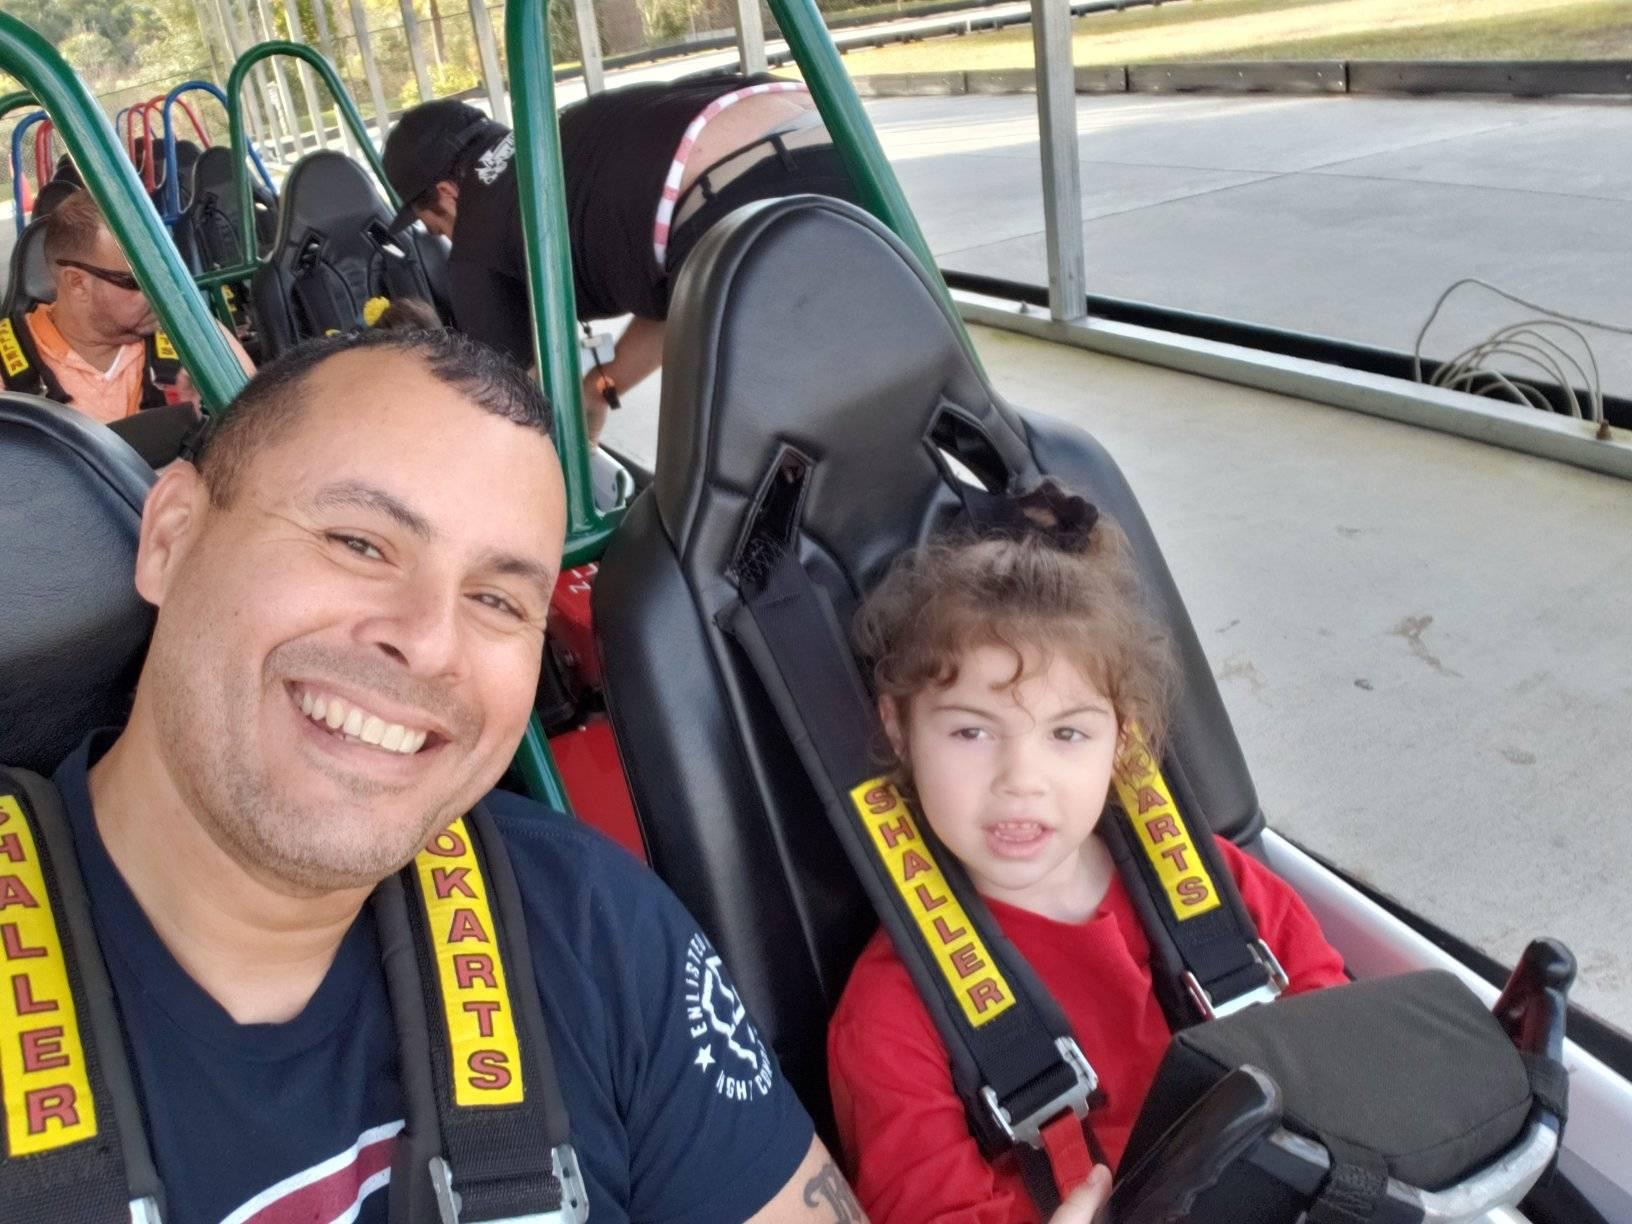 Georgia National Guardsman Gabriel Santos is shown with his daughter Loriana. The 5-year-old girl died suddenly on Feb. 9. (Courtesy photo via Ryan Callaway)